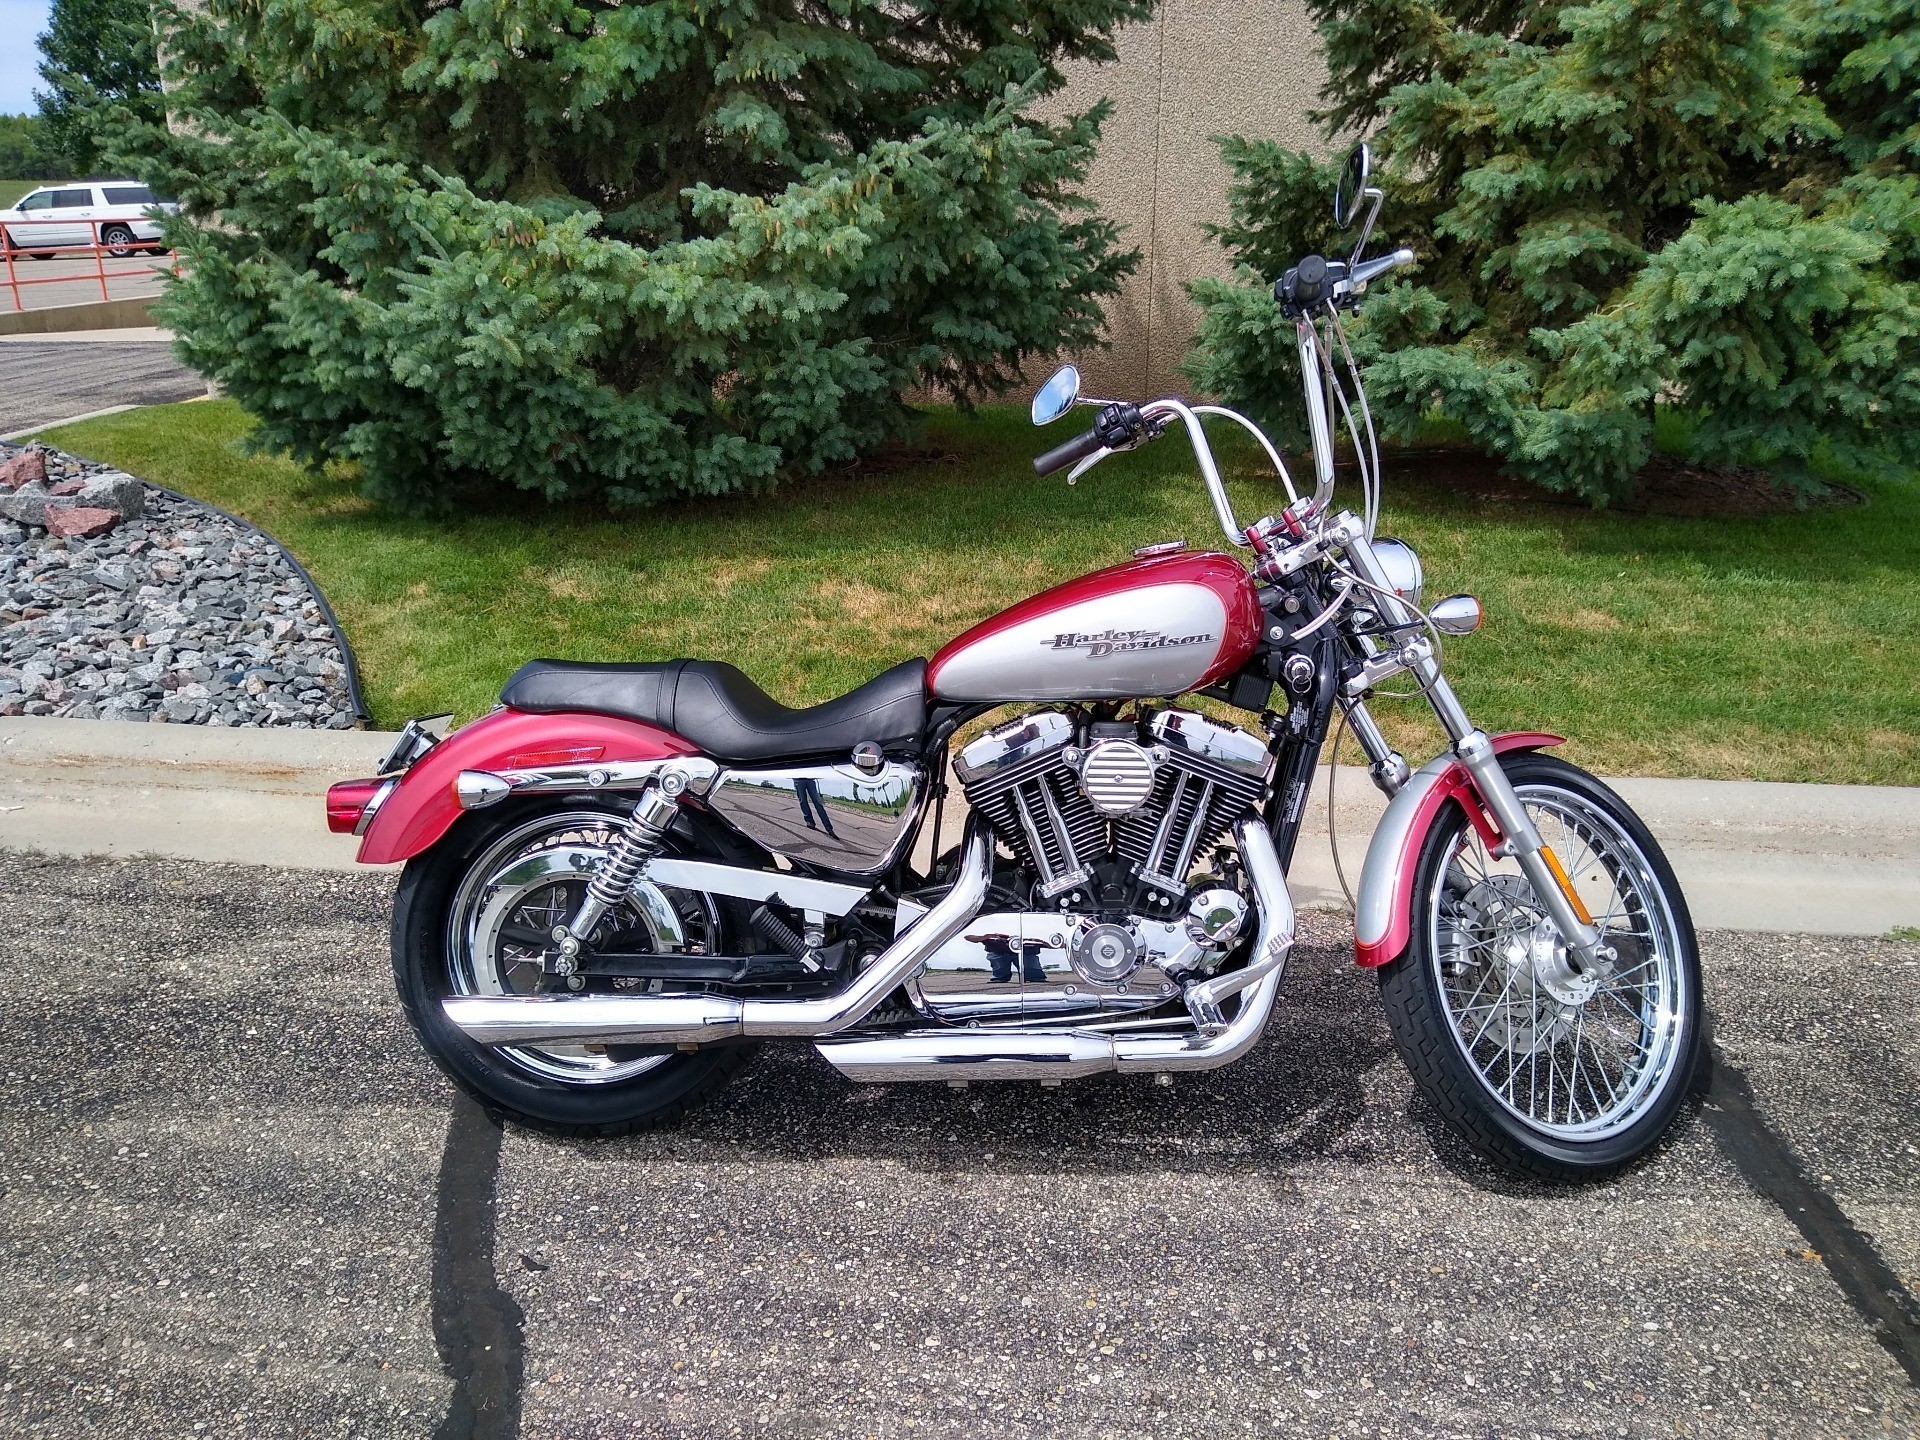 2004 Harley-Davidson Sportster® XL 1200 Custom in Alexandria, Minnesota - Photo 1